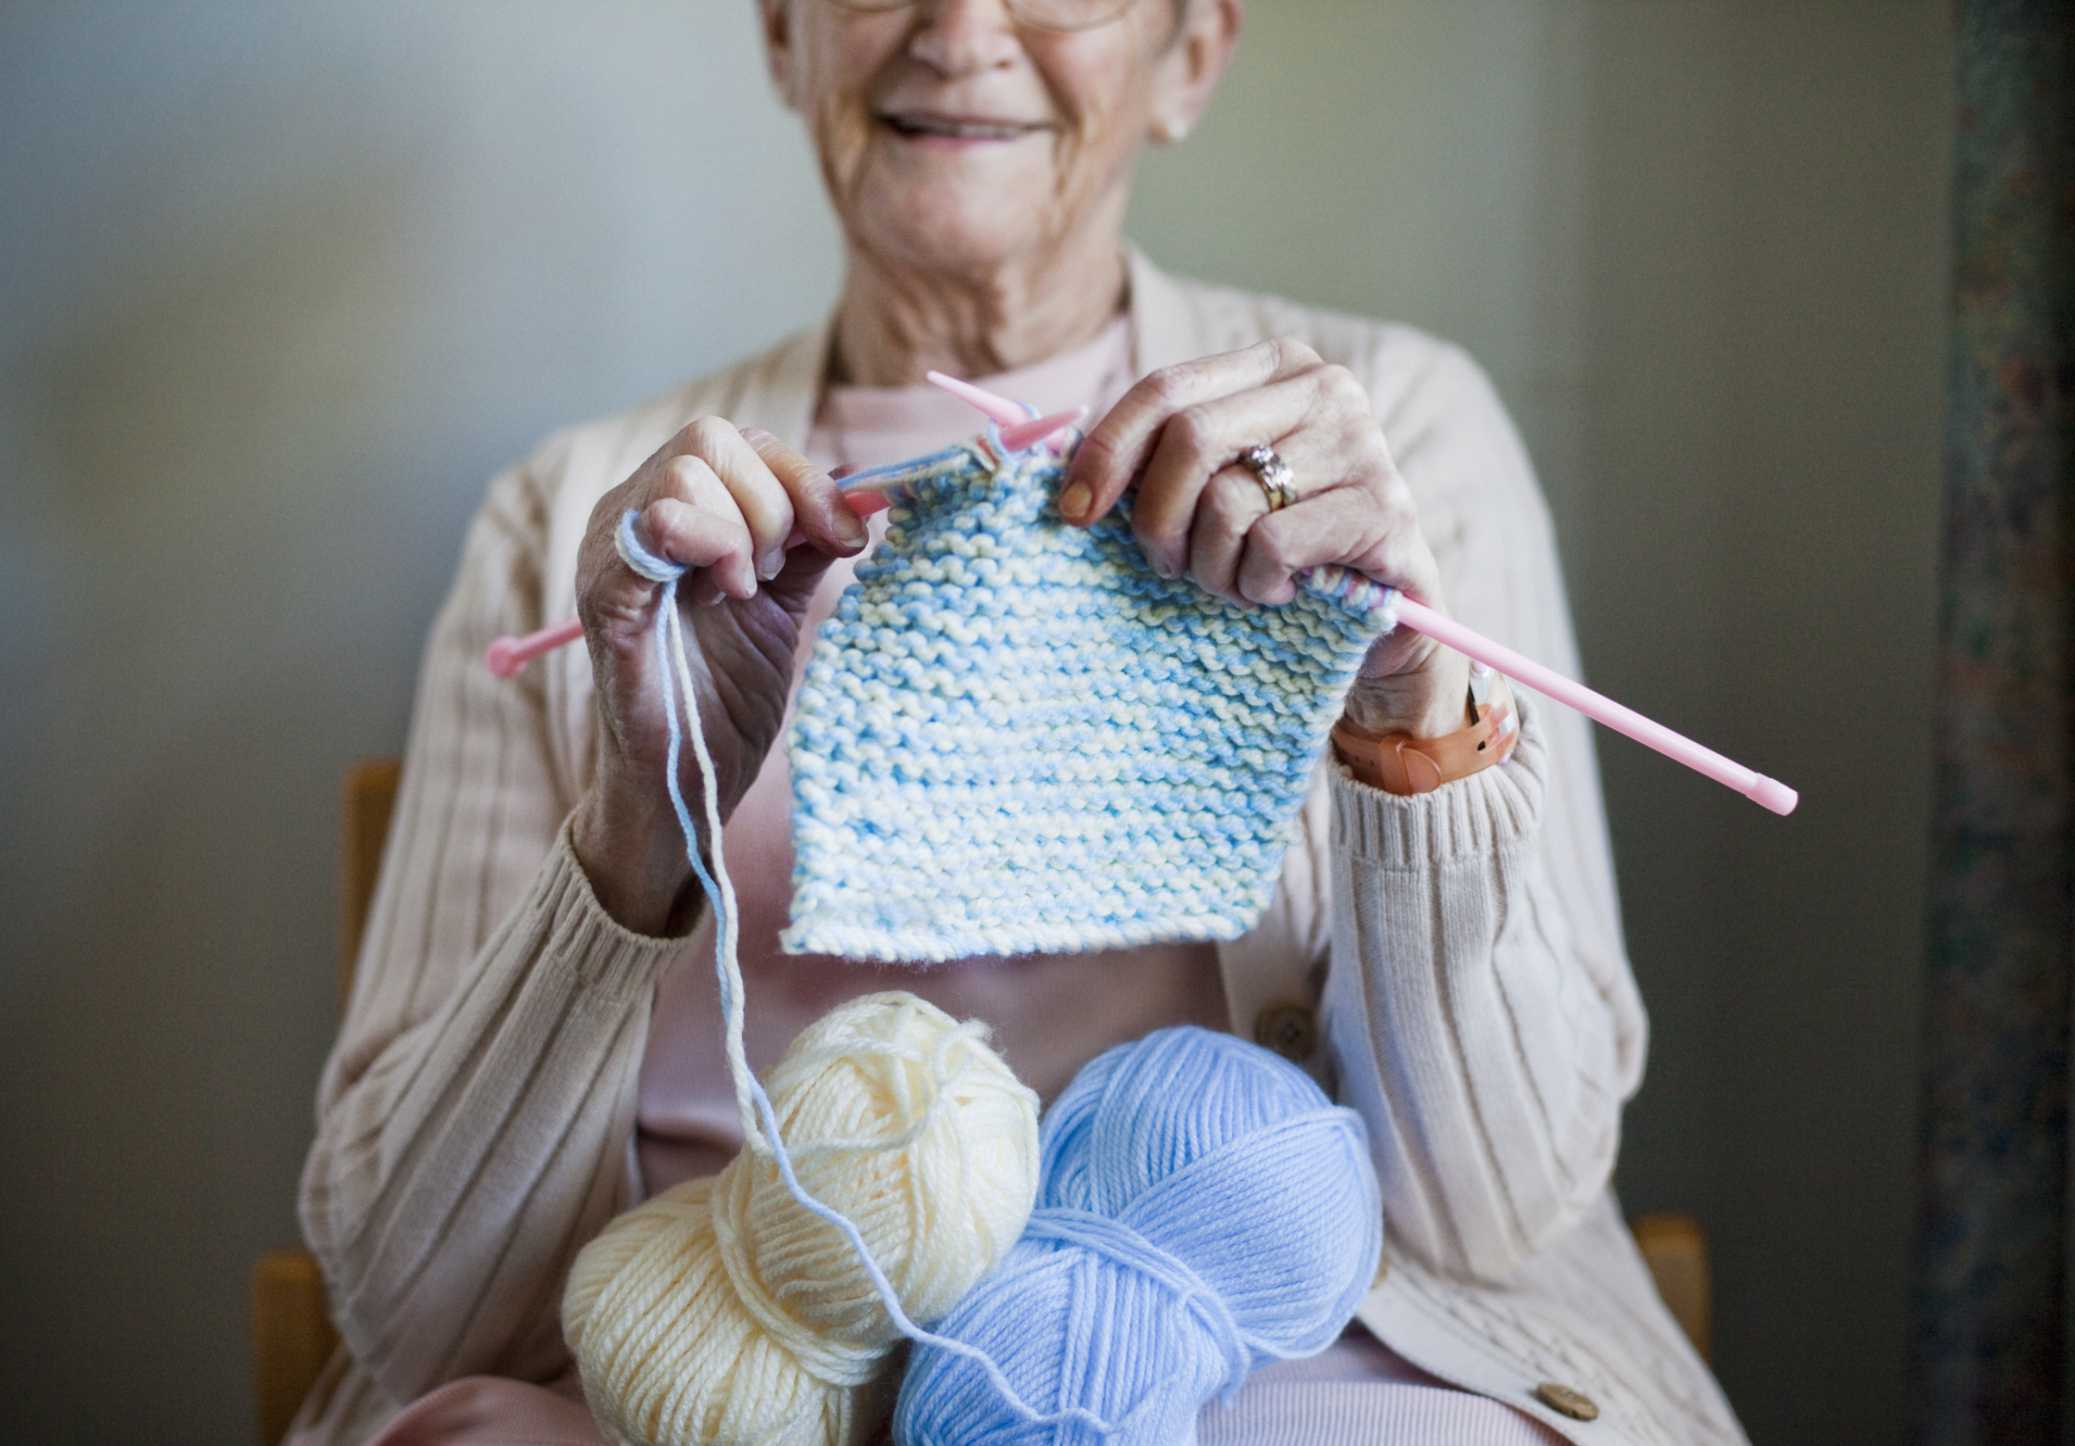 Learn About Adaptive Aids For Knitting And Crocheting